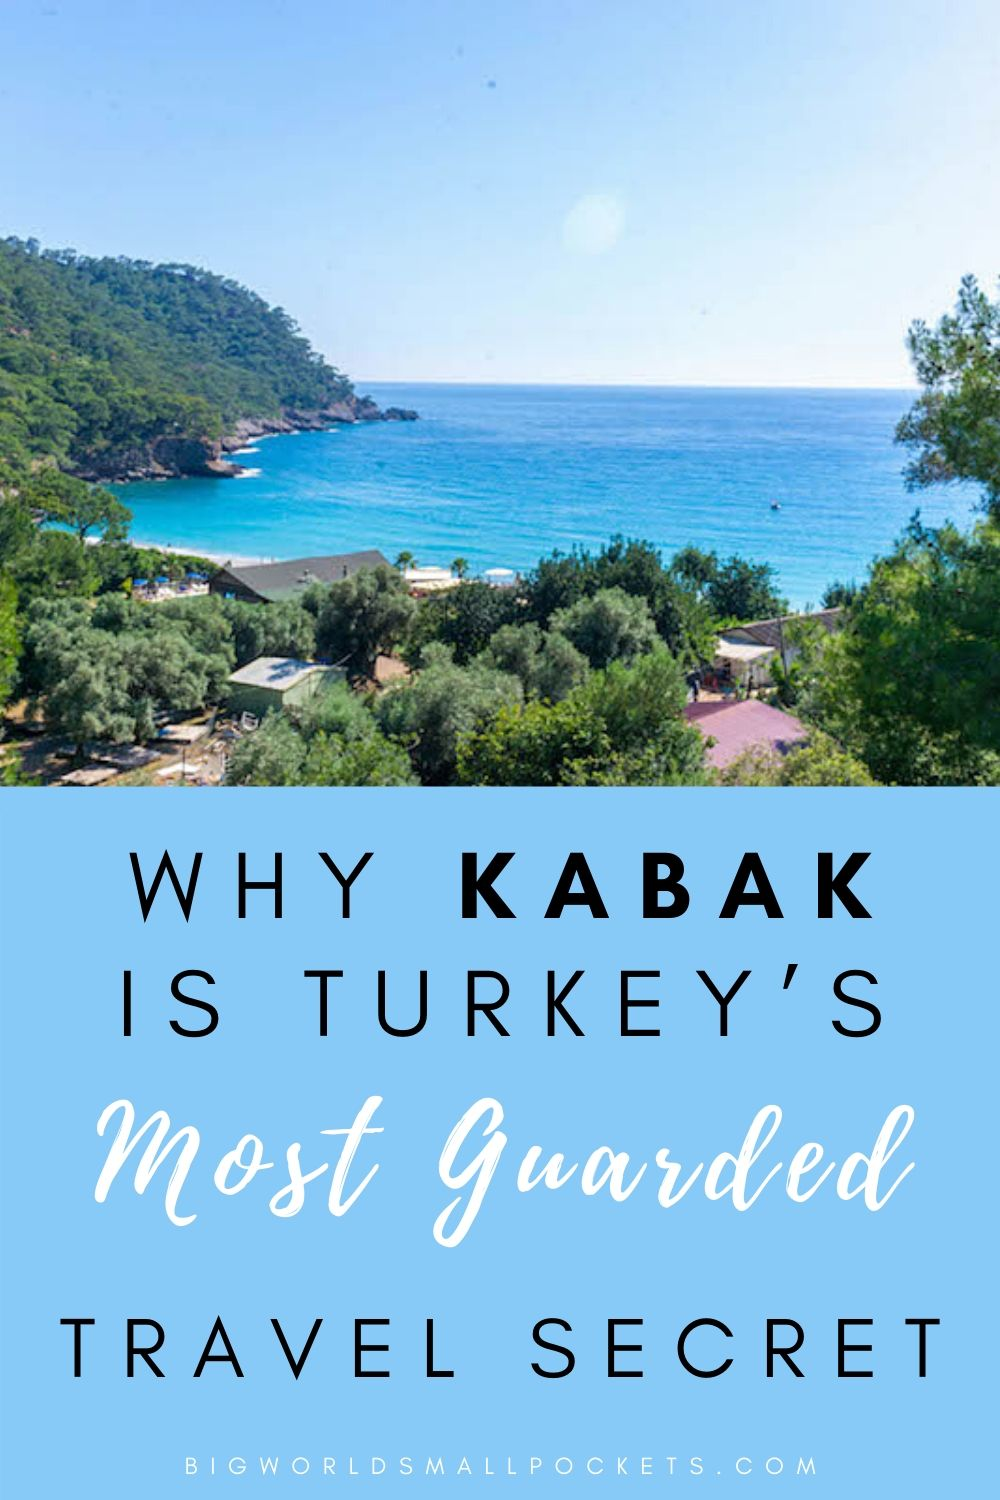 Why Kabak is Turkey's Most Guarded Travel Spot